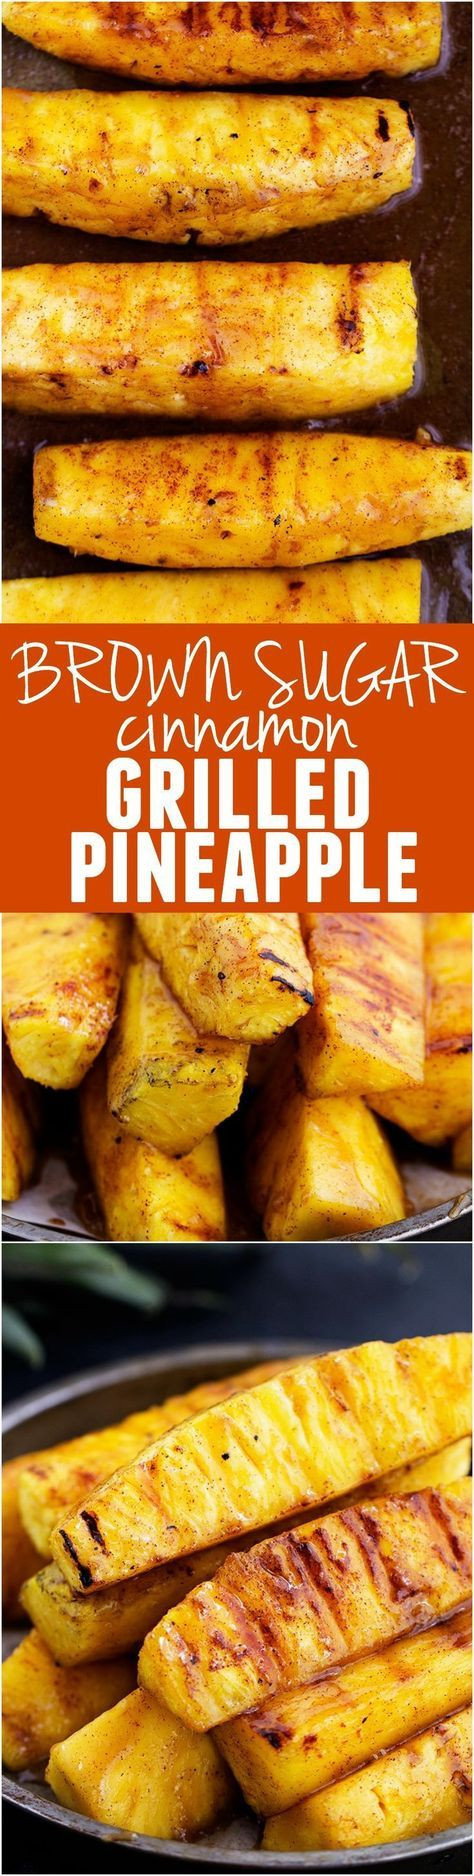 This Brown Sugar Cinnamon Grilled Pineapple will be the BEST side that you will ever grill! It caramelizes on top of this juicy pineapple and will blow your mind!